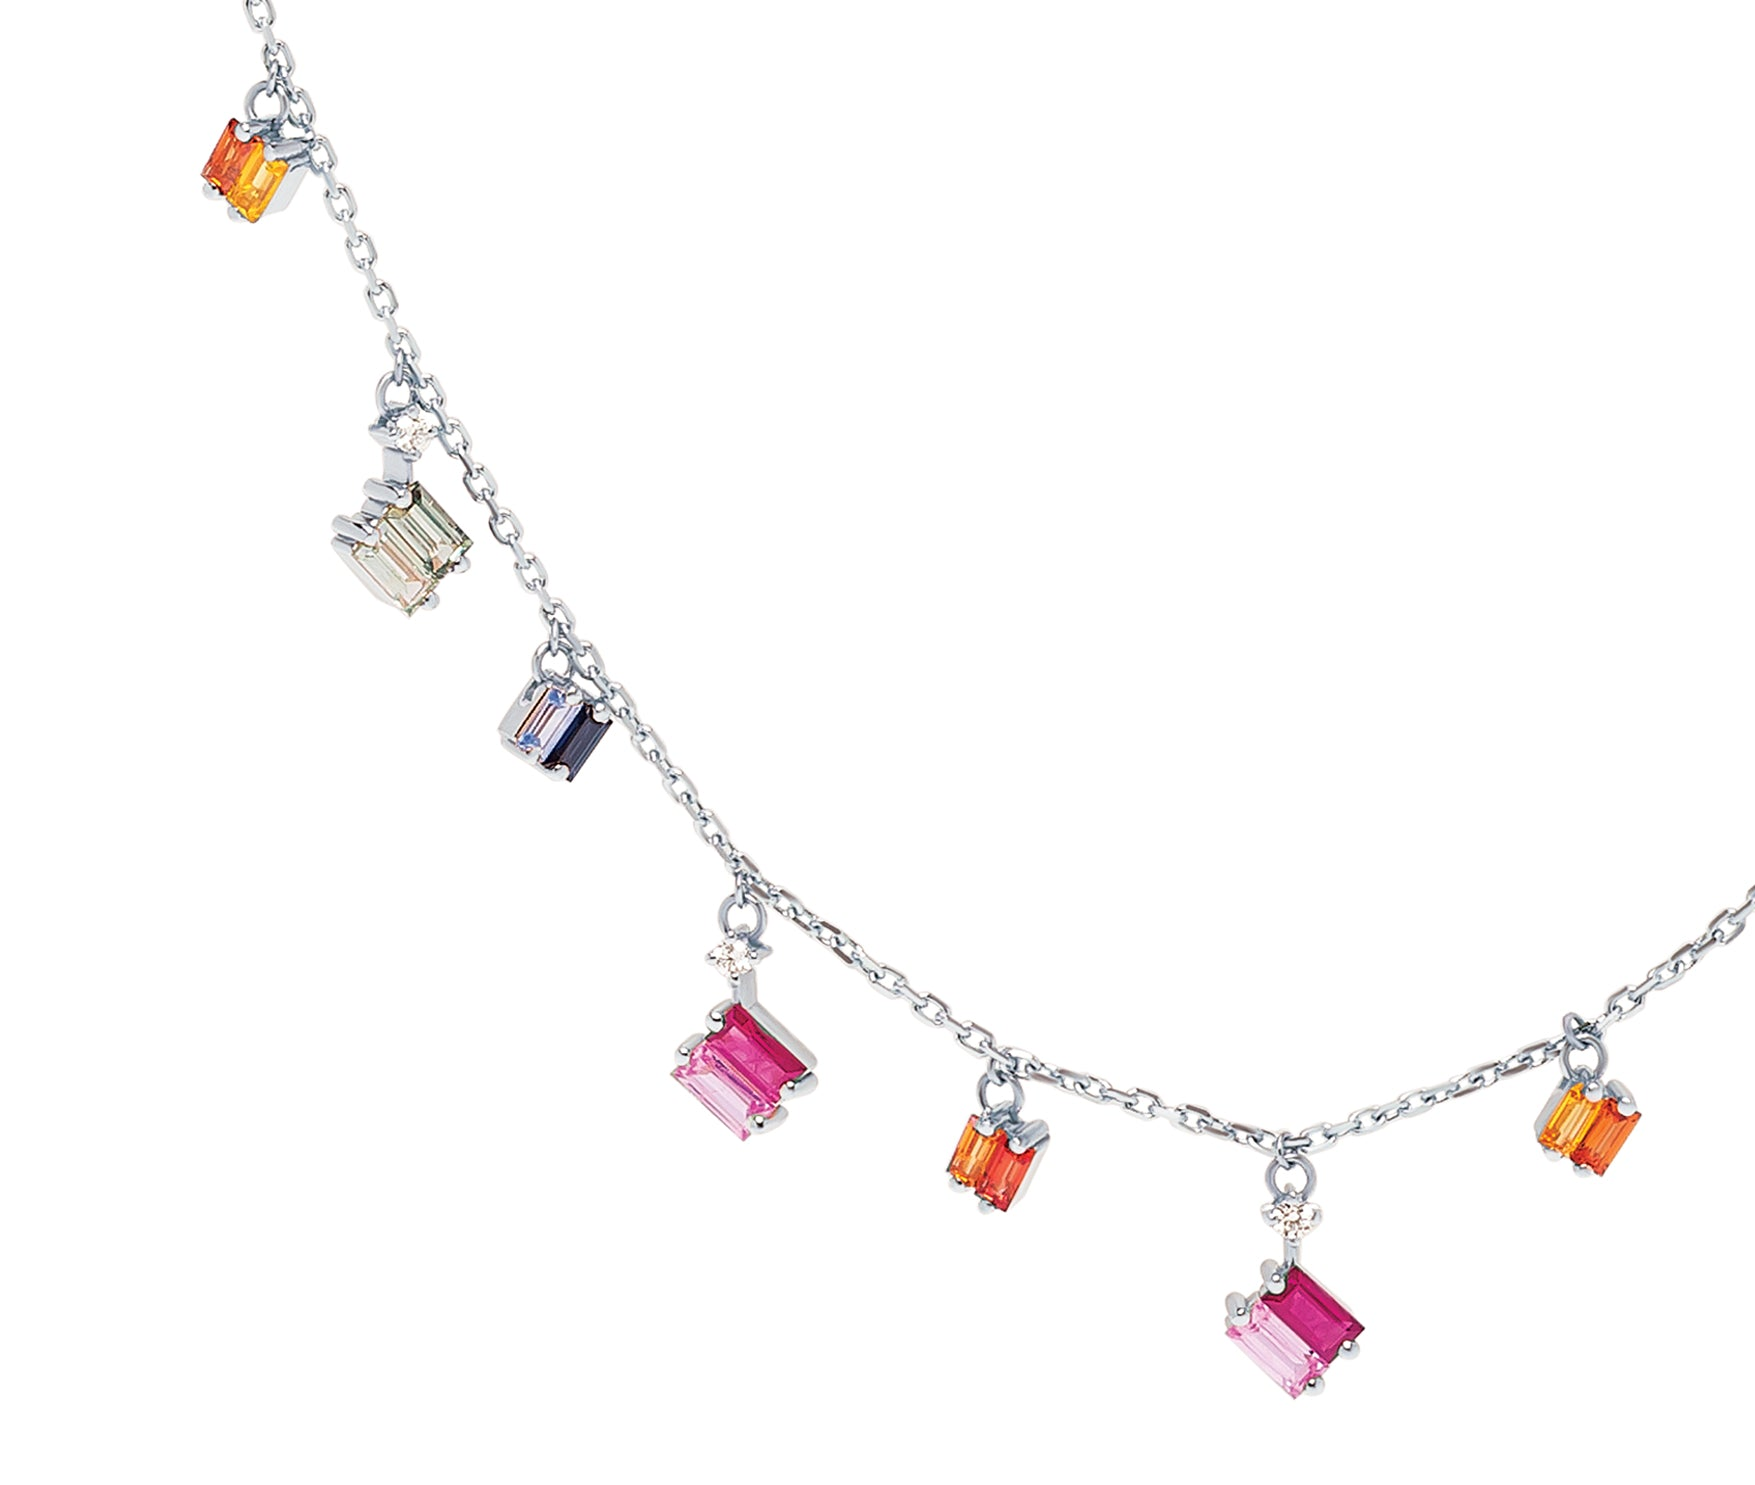 18K WHITE GOLD RAINBOW FRENZY DROPS NECKLACE